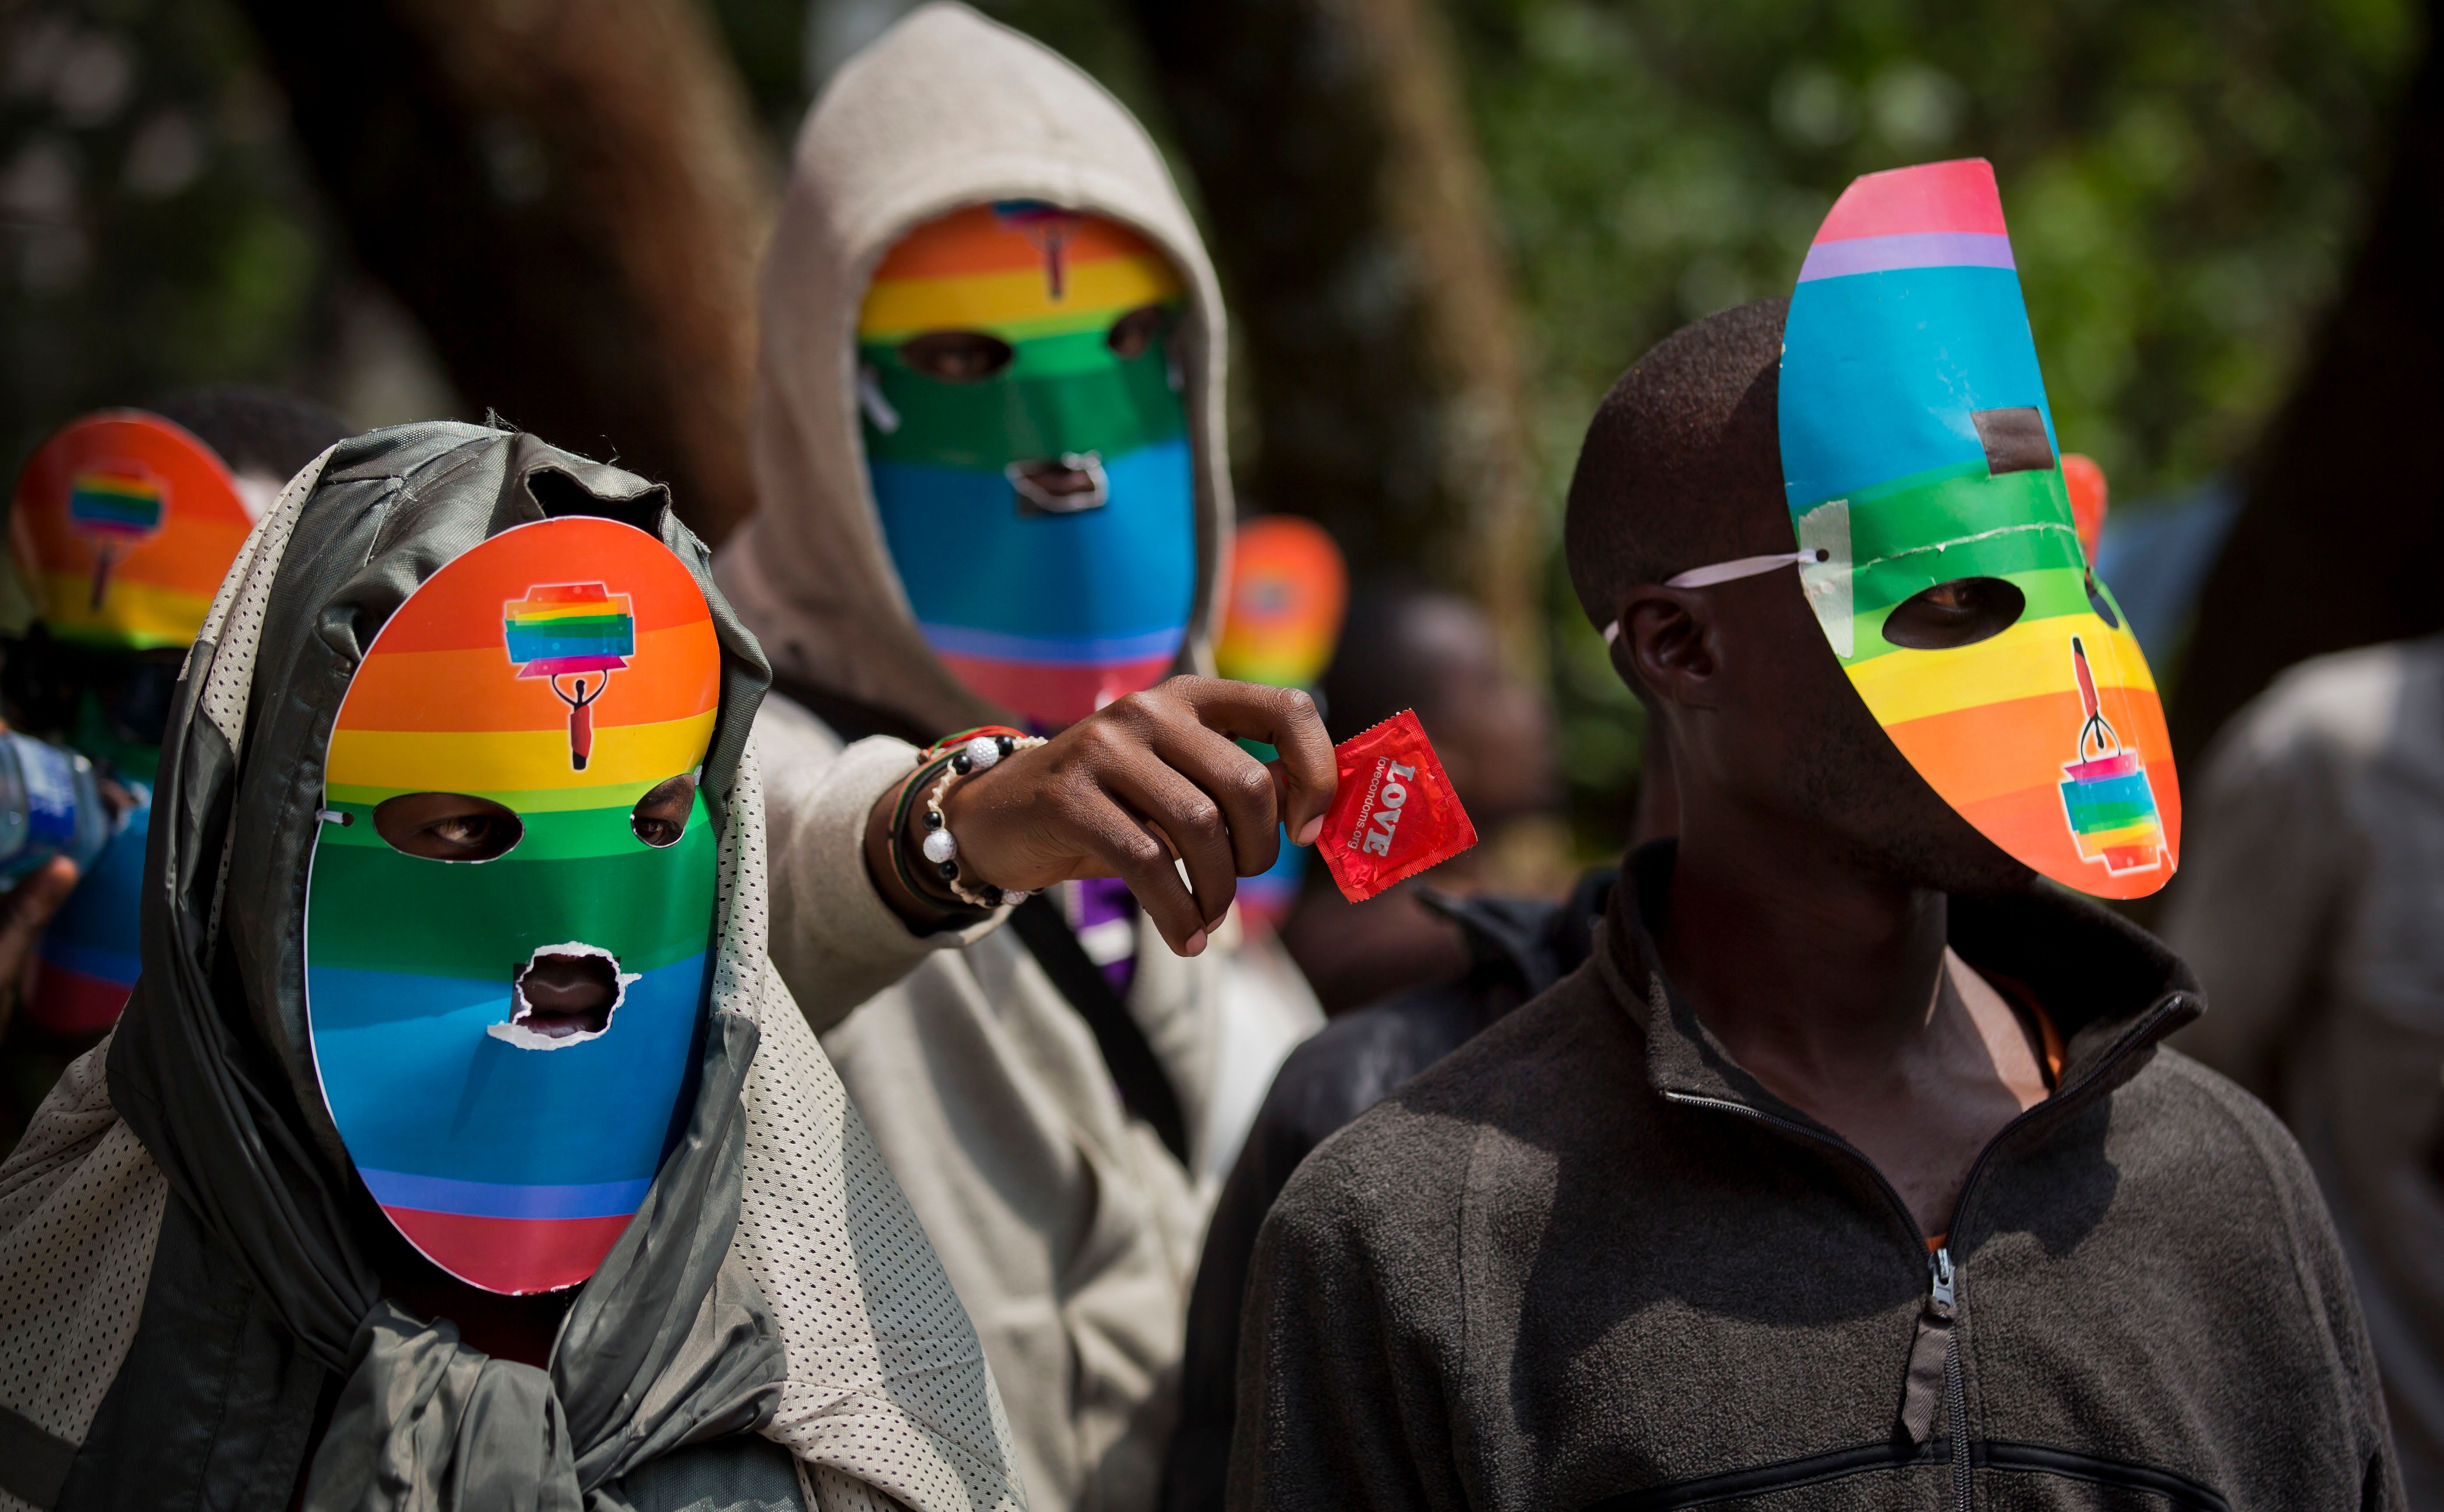 10 Of The Most Dangerous Places In The World To Be LGBT